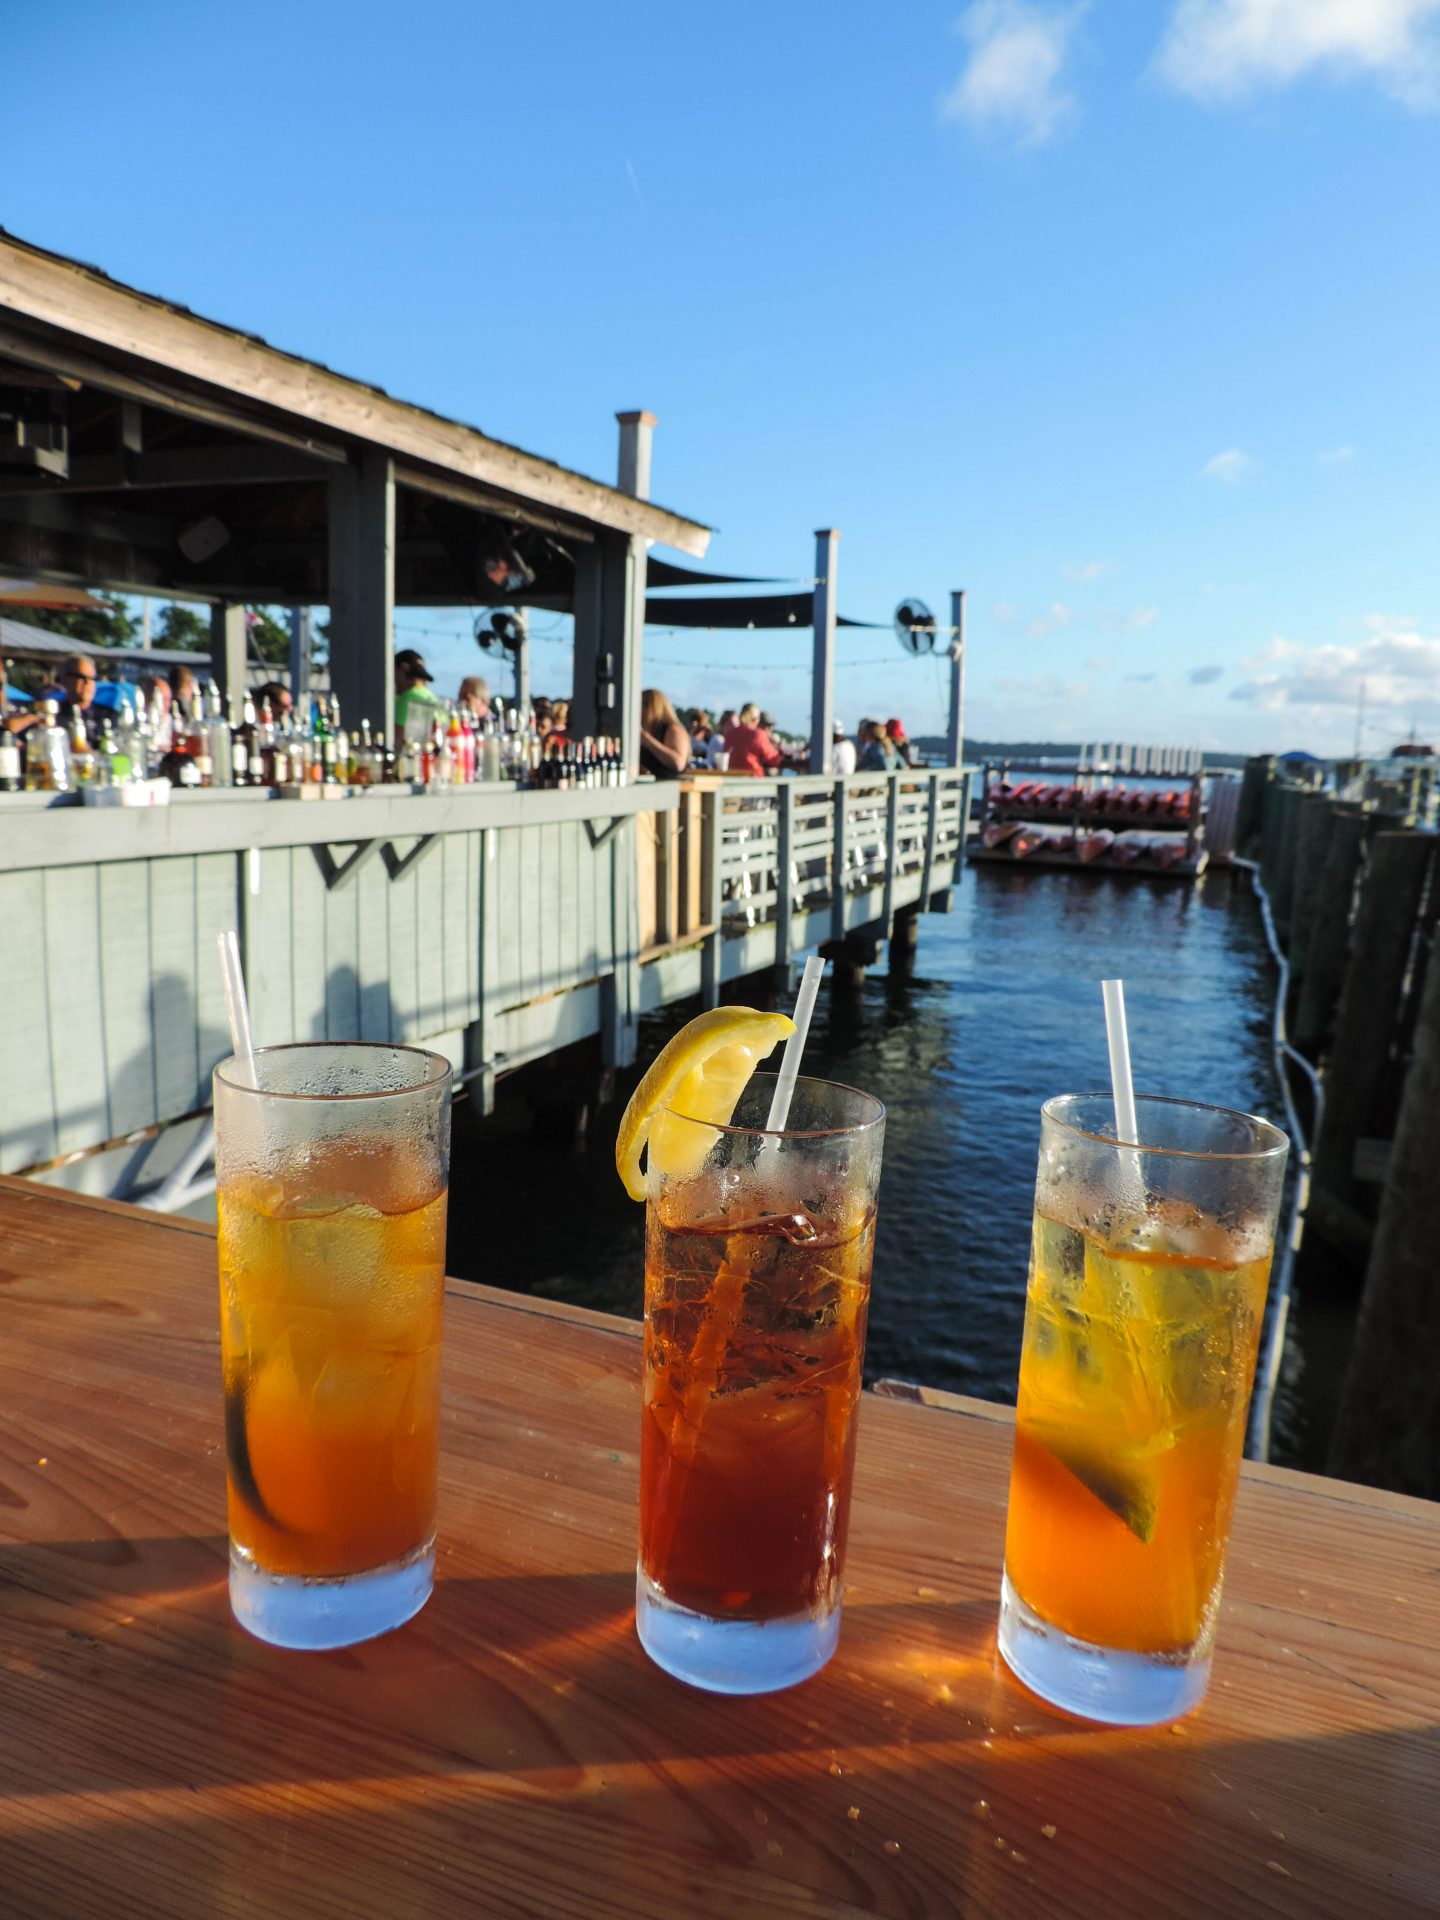 Postcards From Hilton Head Island: Where to Eat